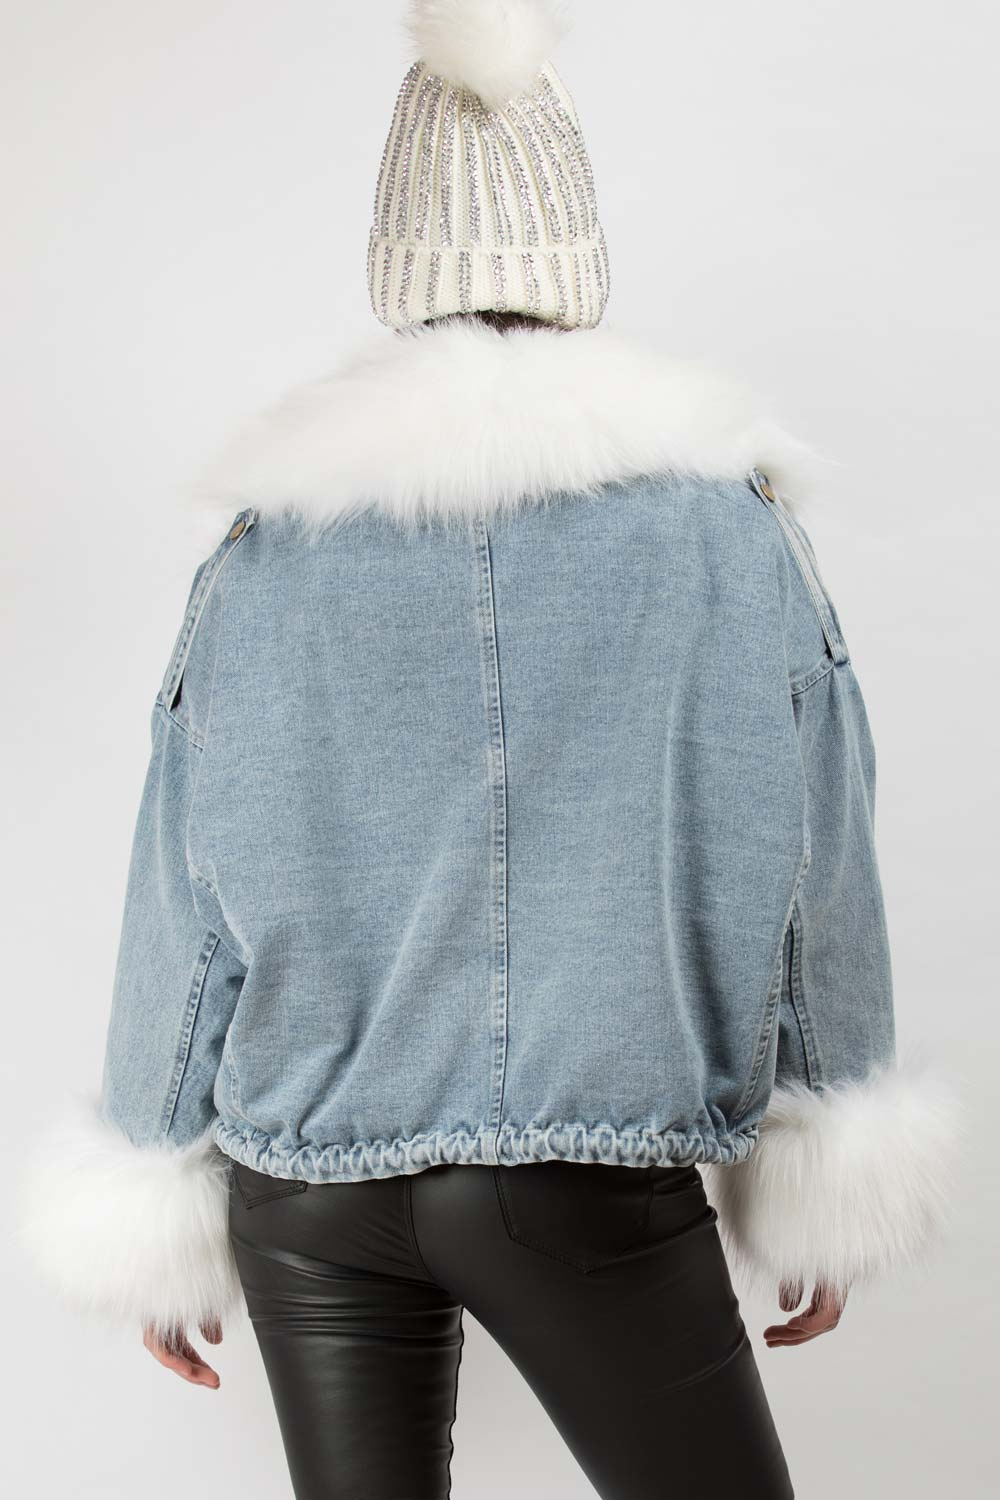 denim oversized jacket with white faux fur collar